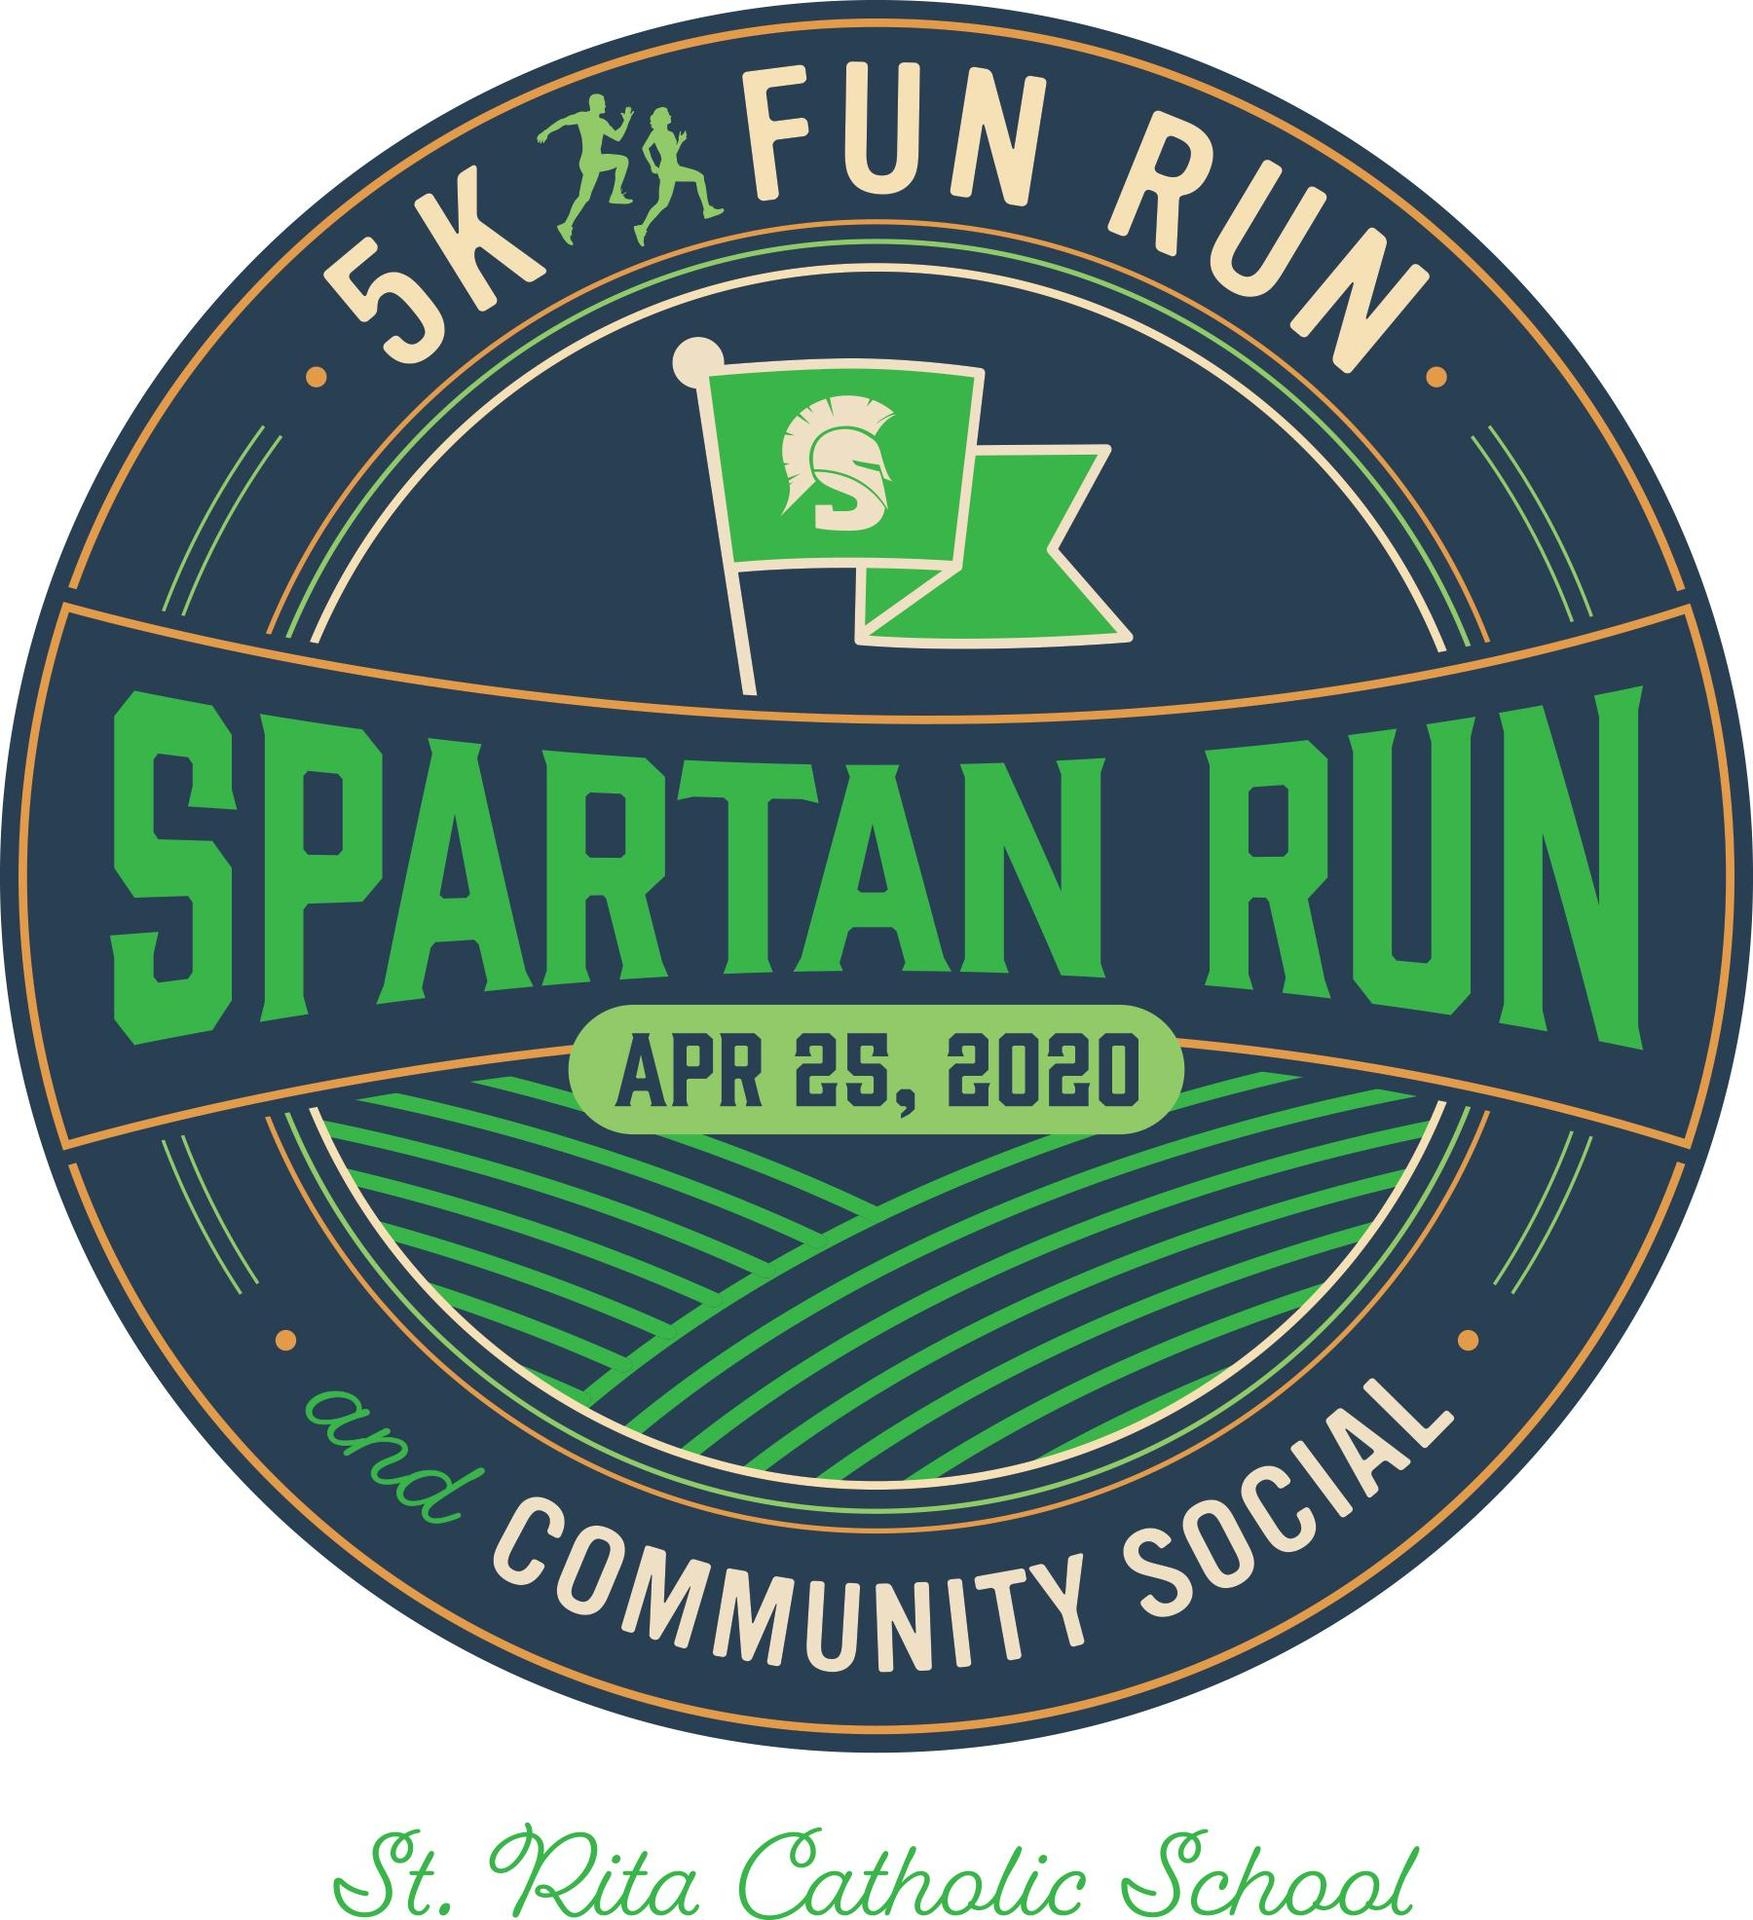 Spartan Run logo